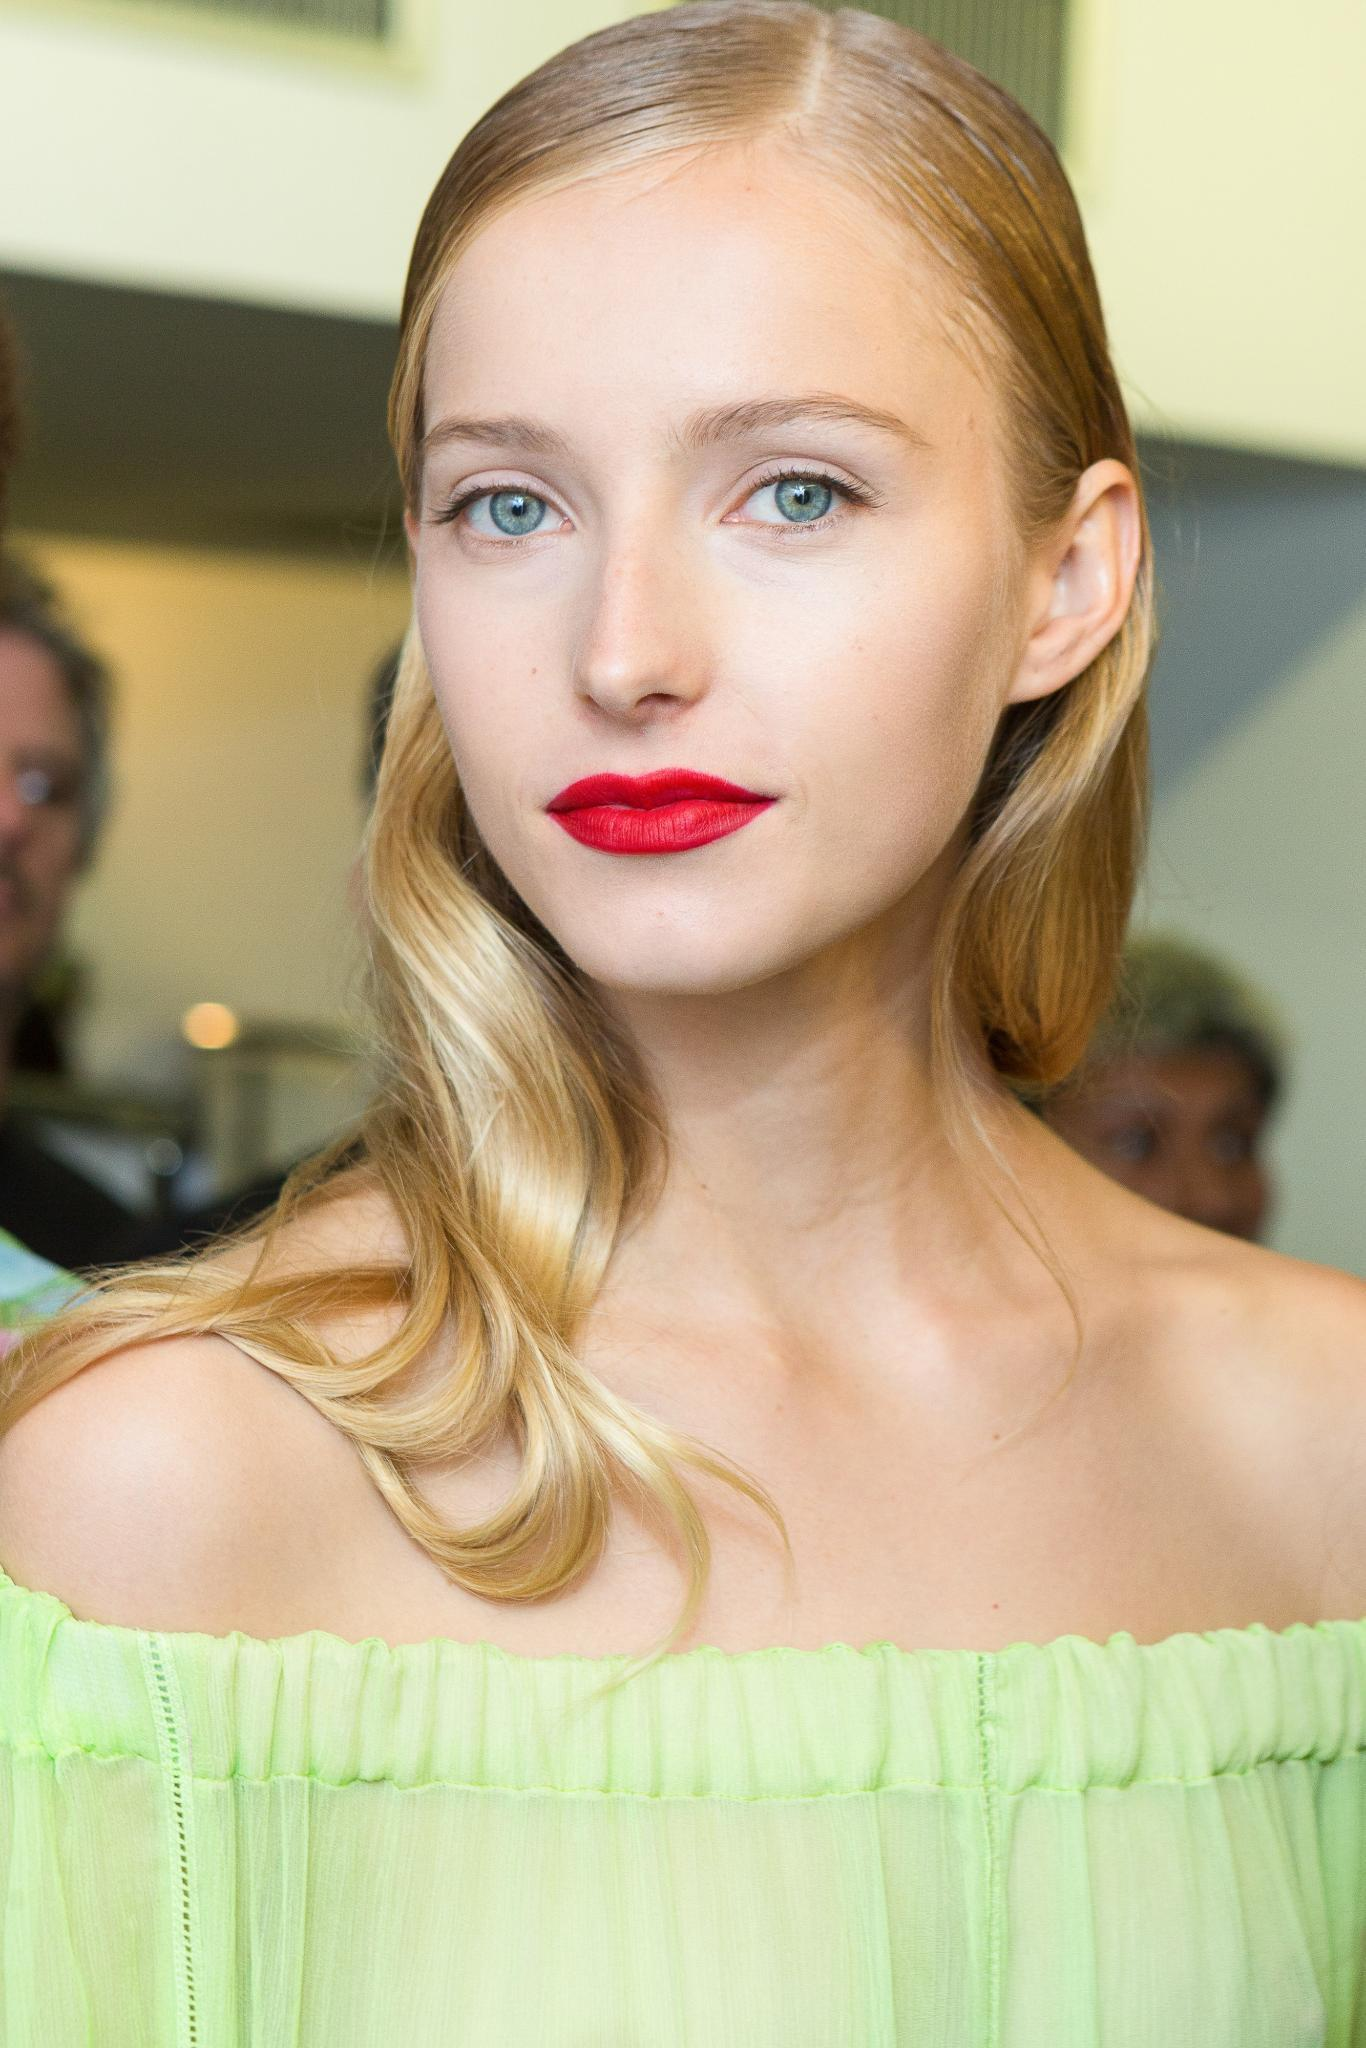 is mousse bad for your hair blonde model loose curls